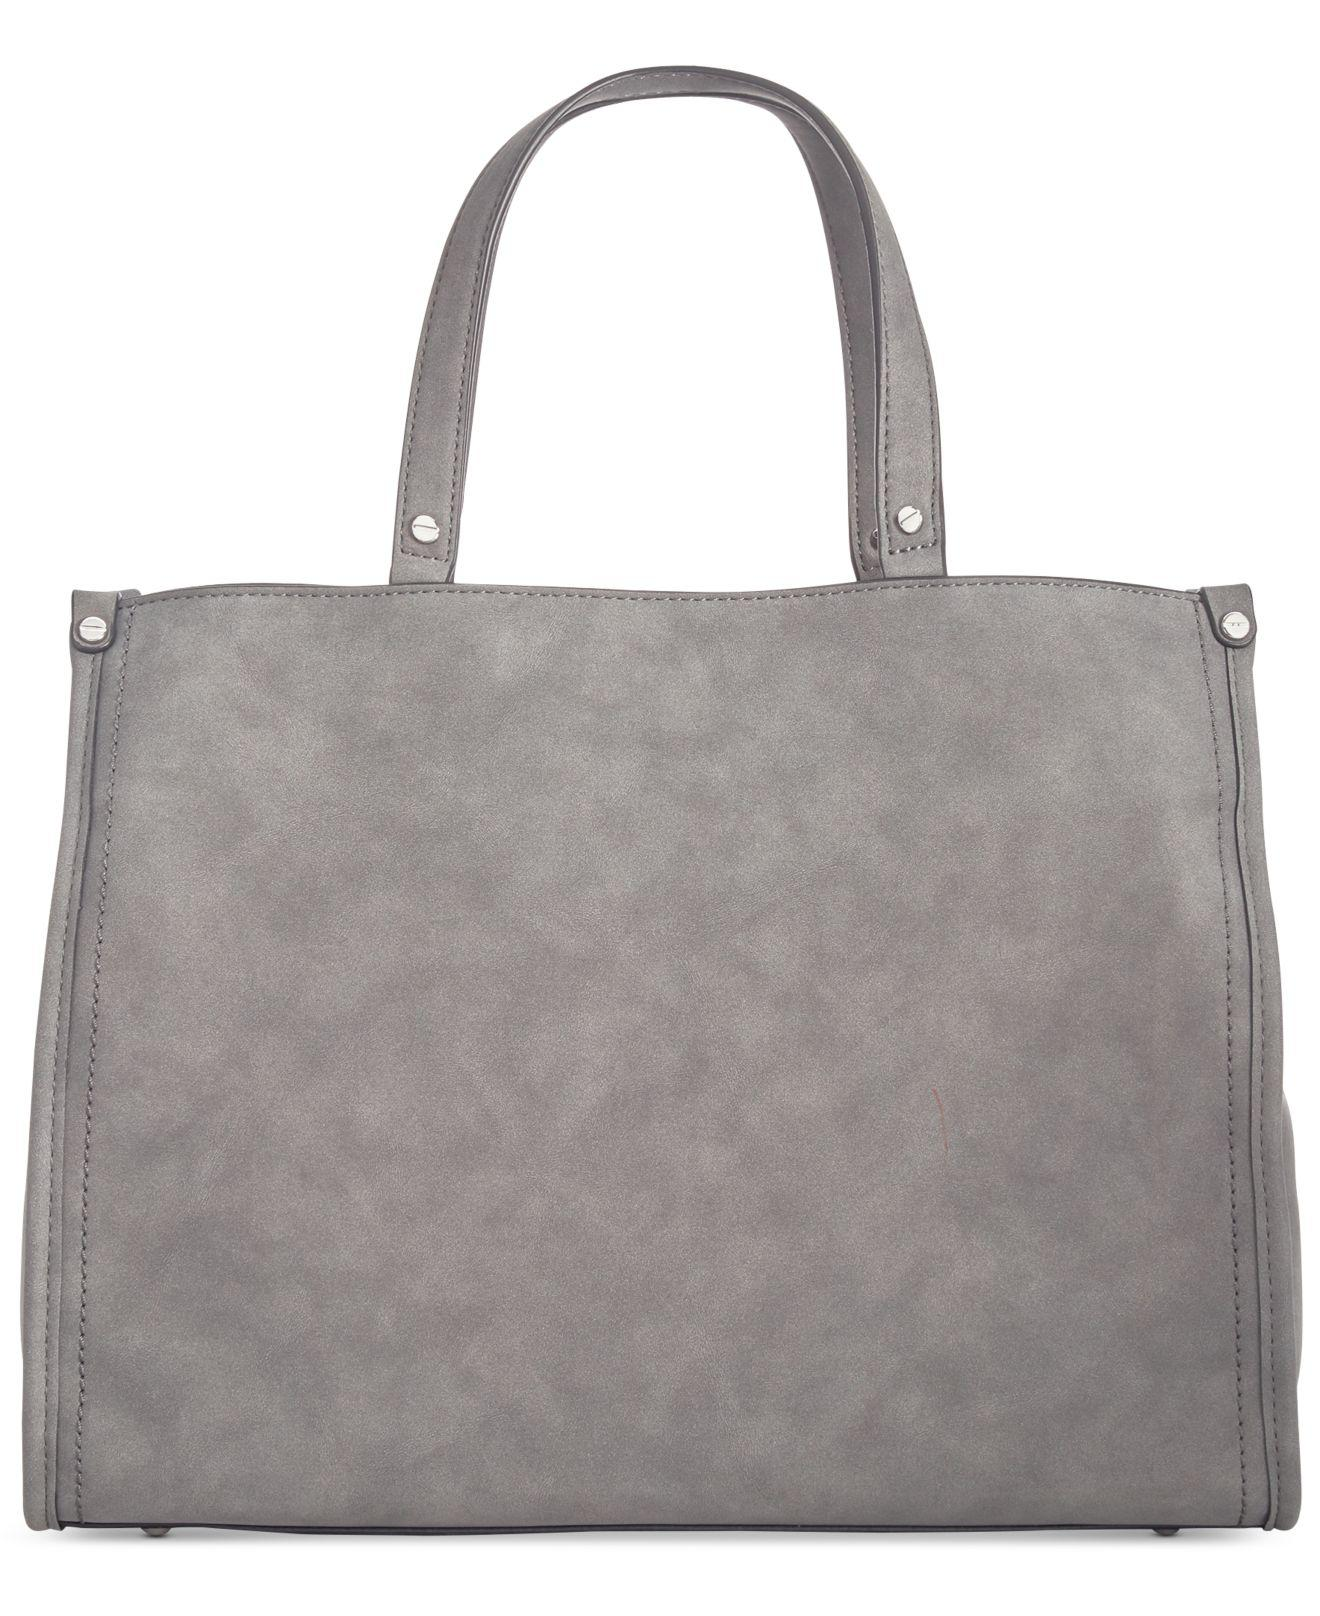 cd30c315dac2 INC International Concepts Remmey Thand Large Satchel in Gray - Lyst